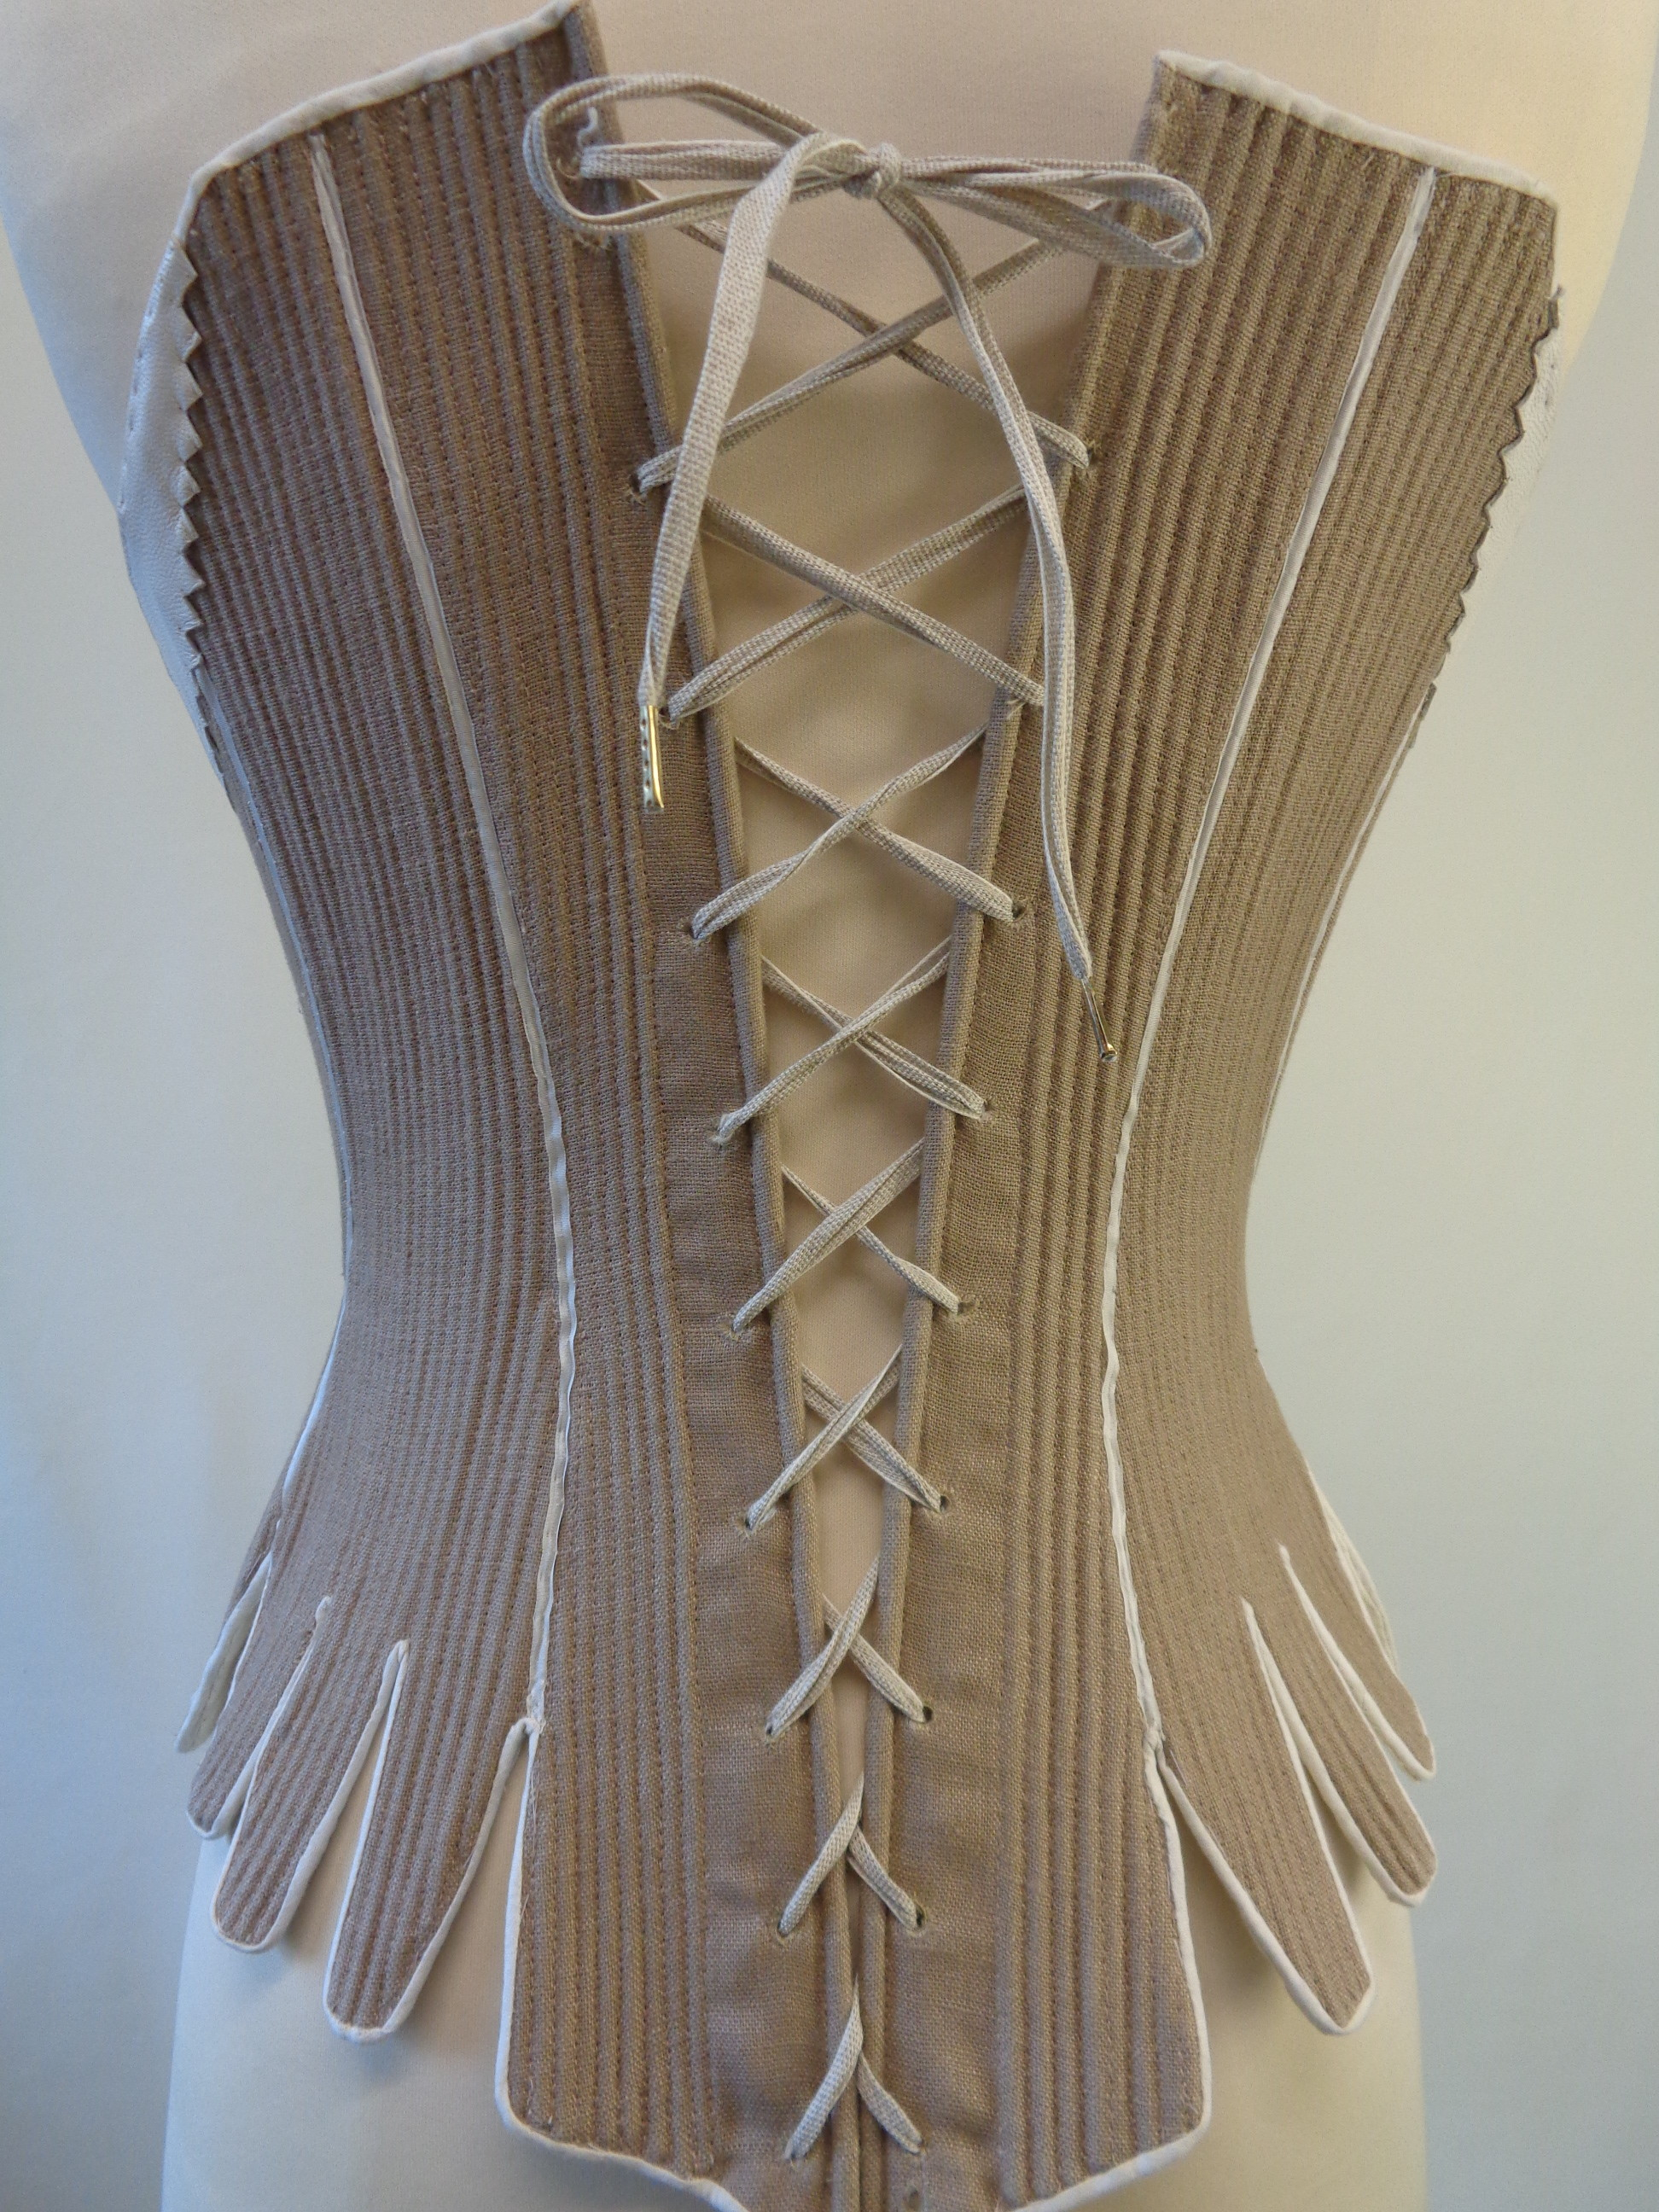 lacing variations of 18th c, CF Crossed Lacing Stays - 1750-75, pink roses and red pretty stays, living history dressing, how do I dress like reenactors, theatre costume, how do I lace my stays, what are the different methods of lacing stays and corsets, what is straight lacing, online hot to videos for historical costumes, how to do straight lacing, photo examples of lacing corsets and stays, how do i dress myself in 18th c costume, georgian costumiers, handbound historical costumes and supplies